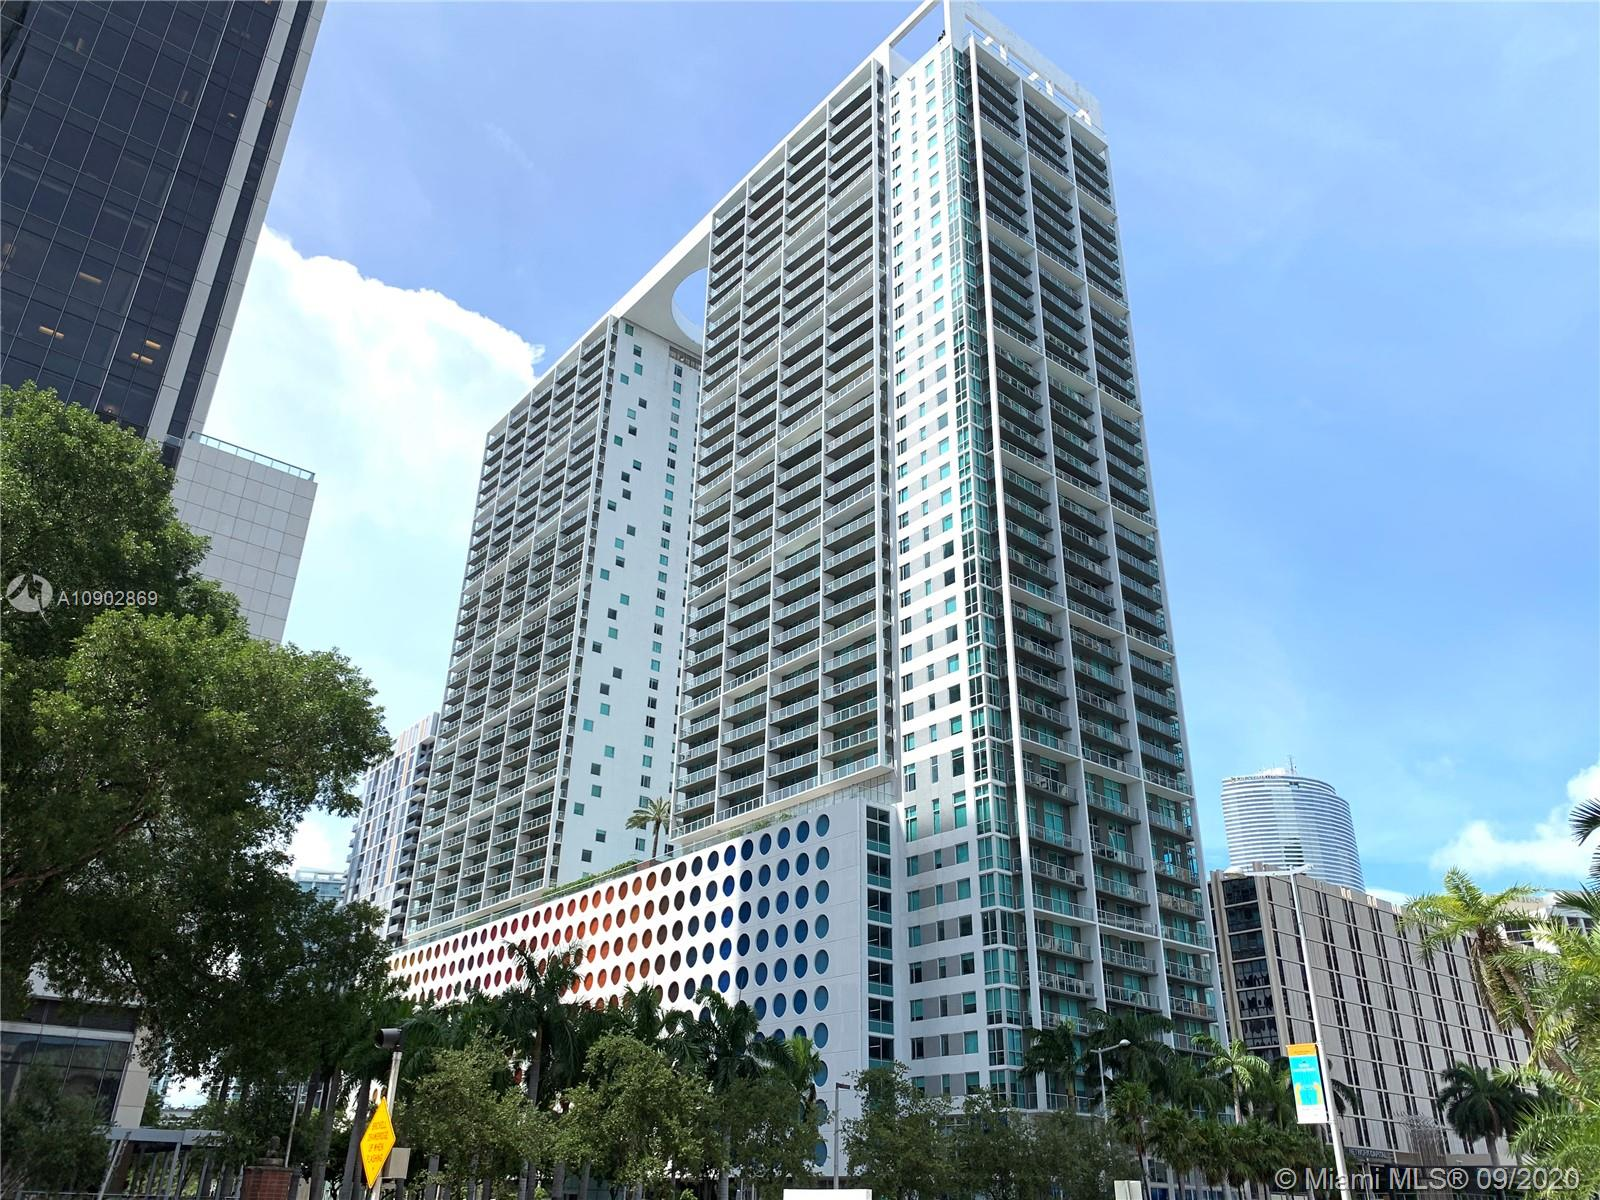 500 Brickell East Tower #3602 - 55 SE 6th St #3602, Miami, FL 33131